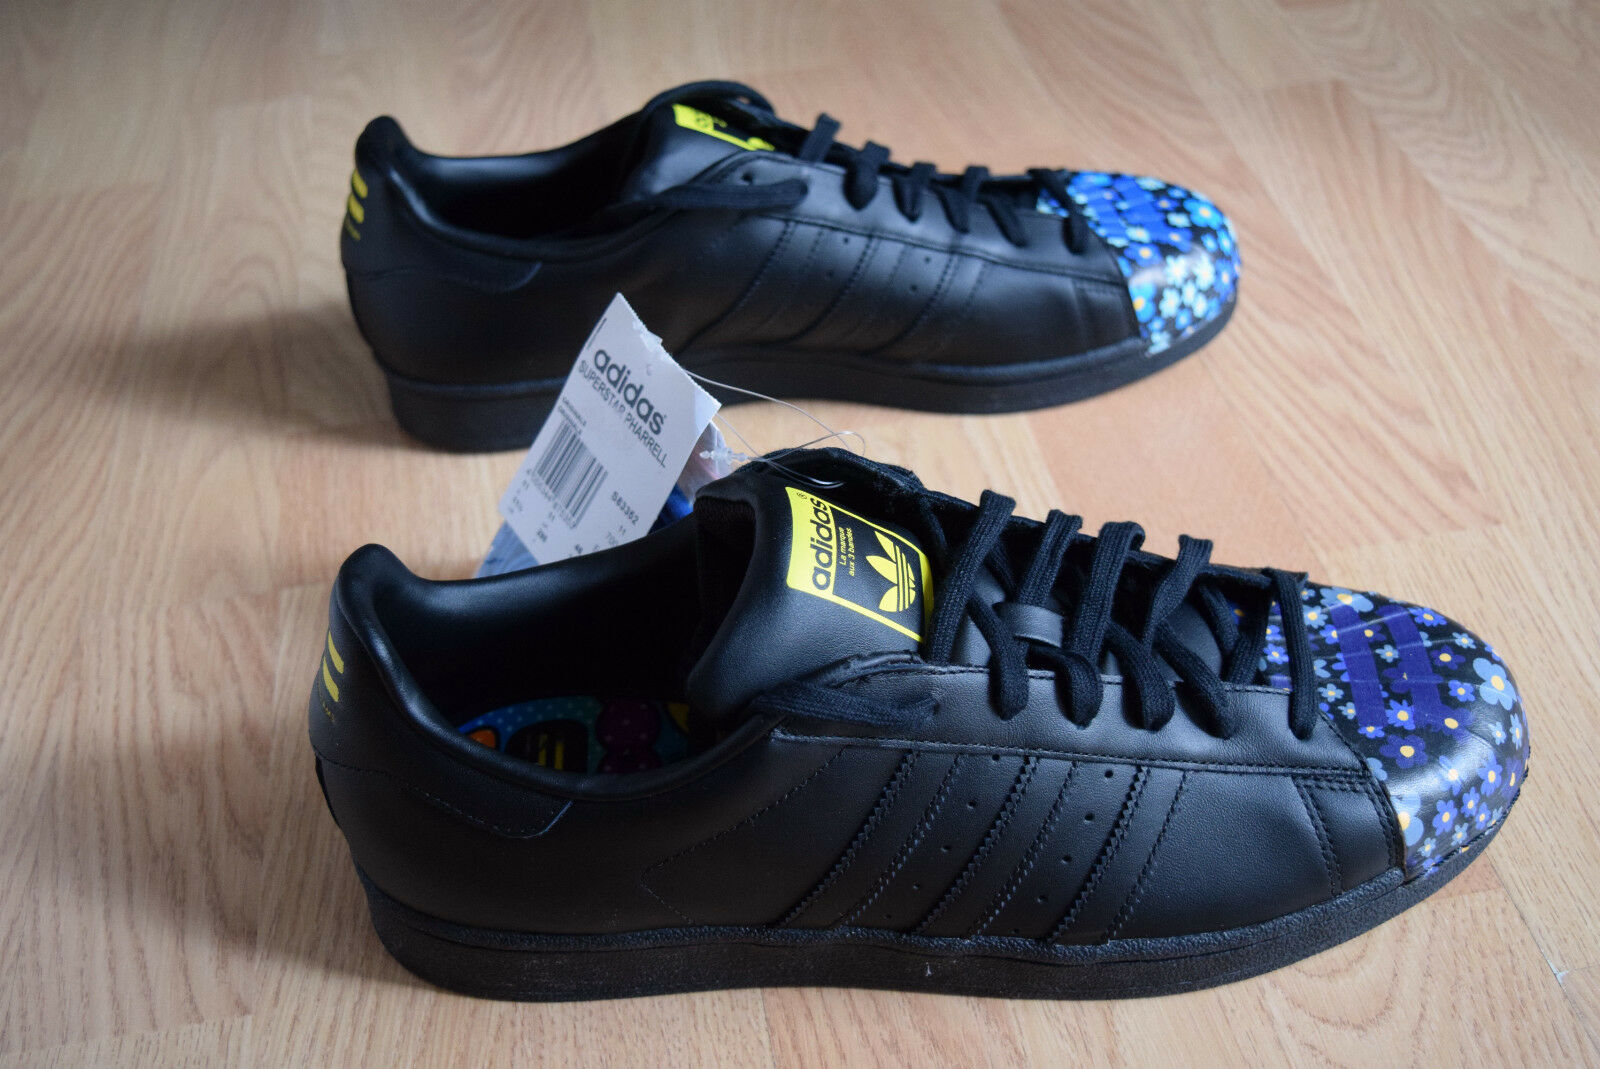 Adidas Superstar smitH Pharell 46 46,5 48,5 Williams sTan smitH Superstar pw Supercolor S83352 23ebfa